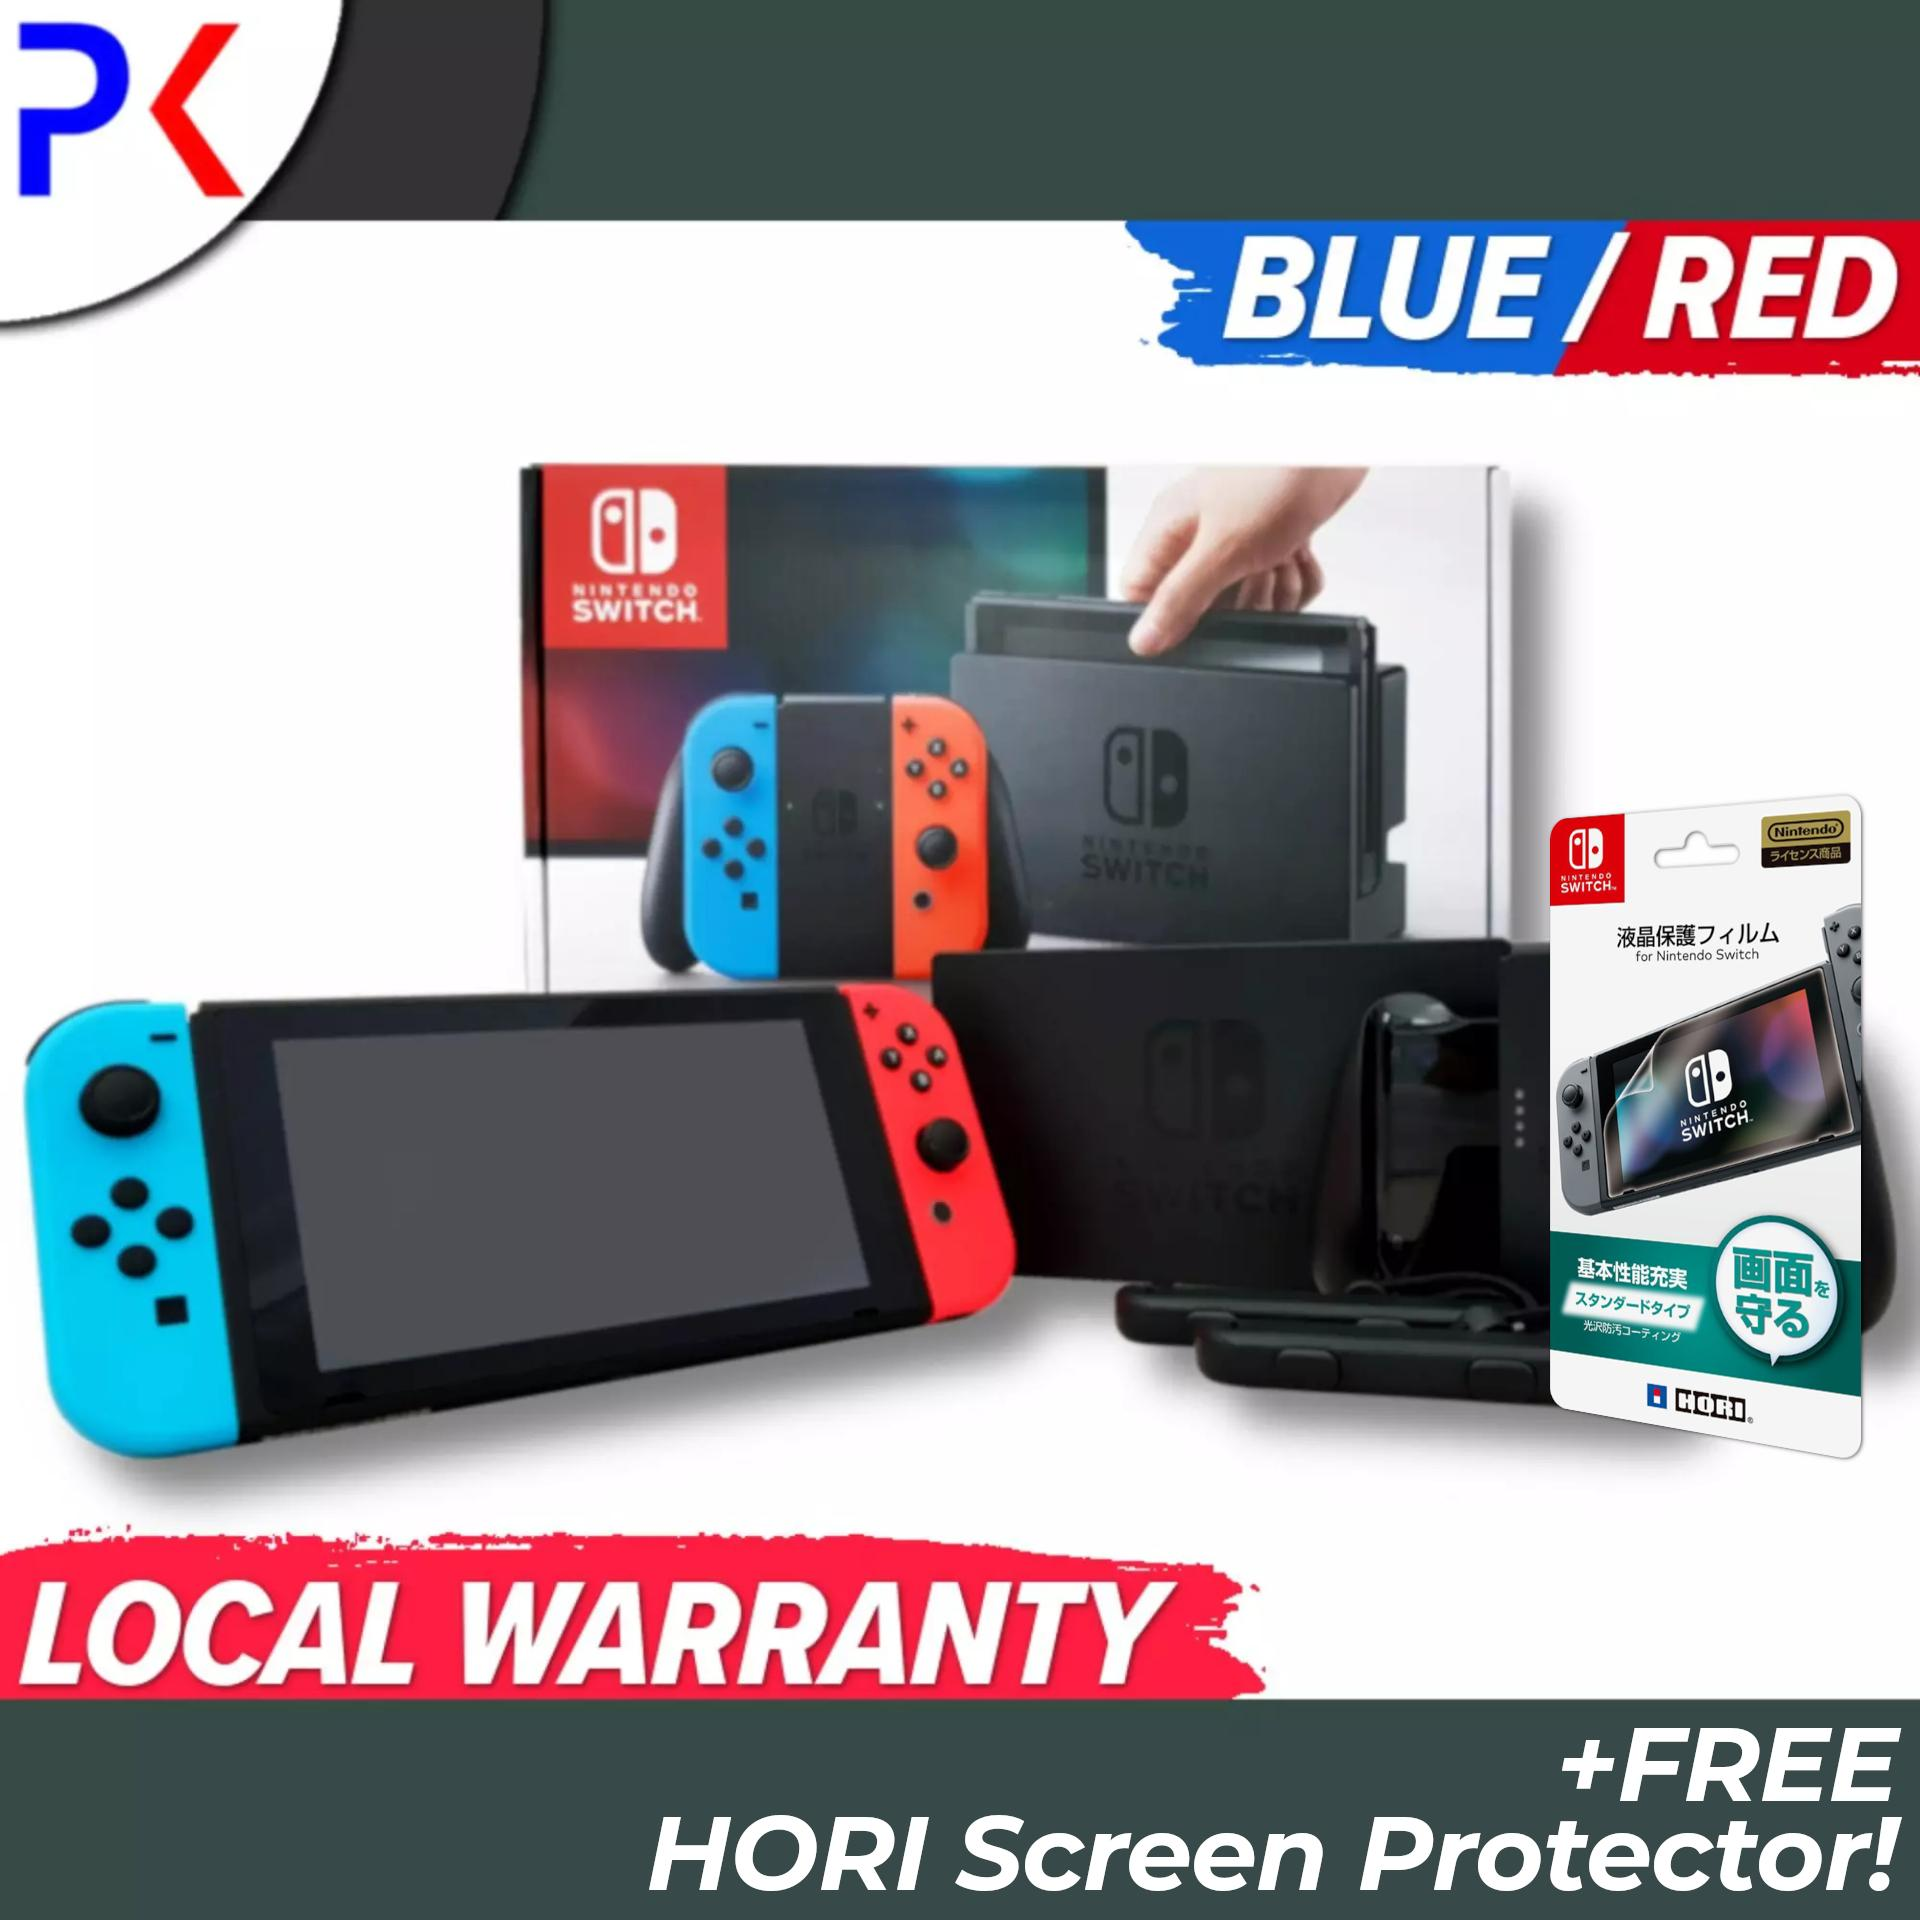 Nintendo Switch Console with Neon Blue/Red Joy Con + 1 Year Local Warranty  + Free HORI Screen Protector